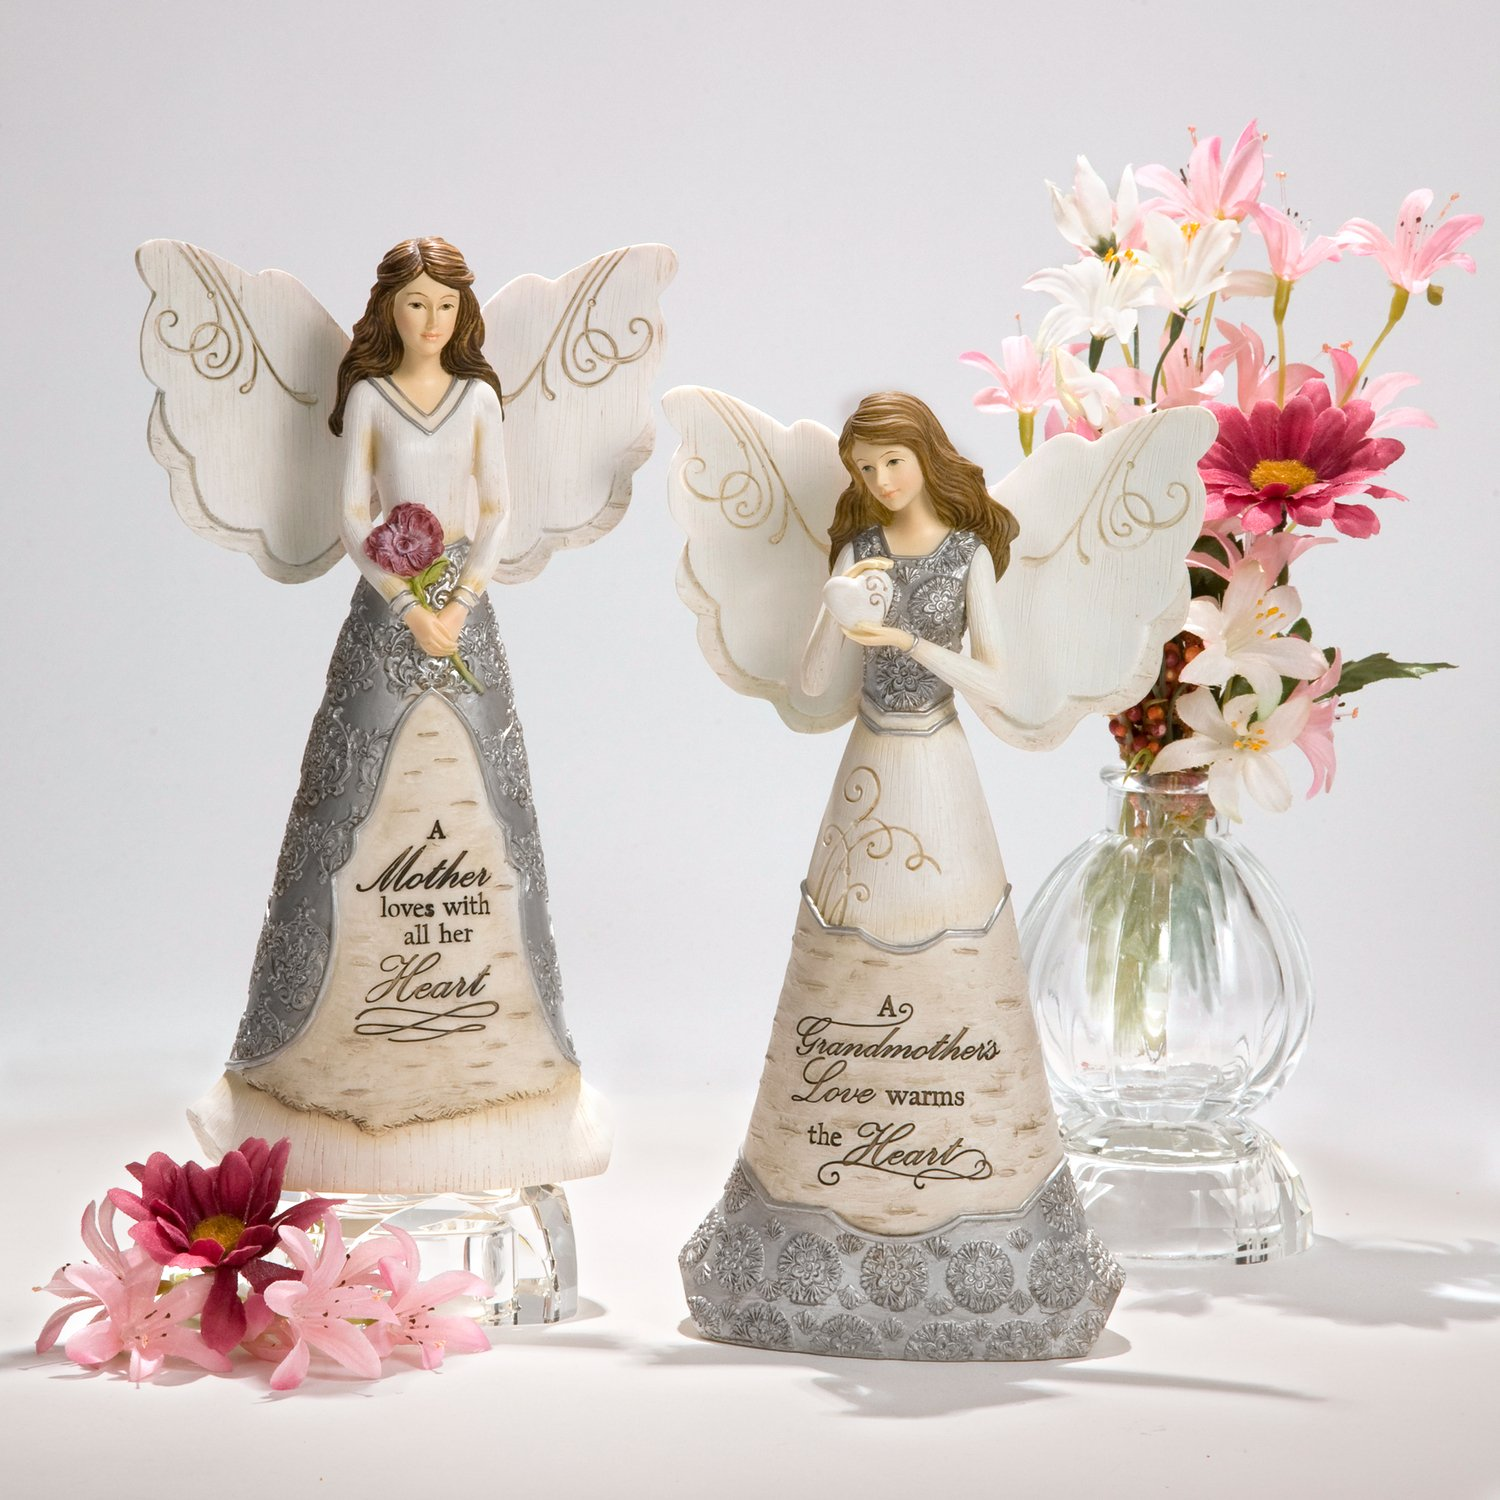 Elements Grandmother Angel Figurine by Pavilion, 8-Inch, Holding Heart, Inscription a Grandmother s Love Warms The Heart